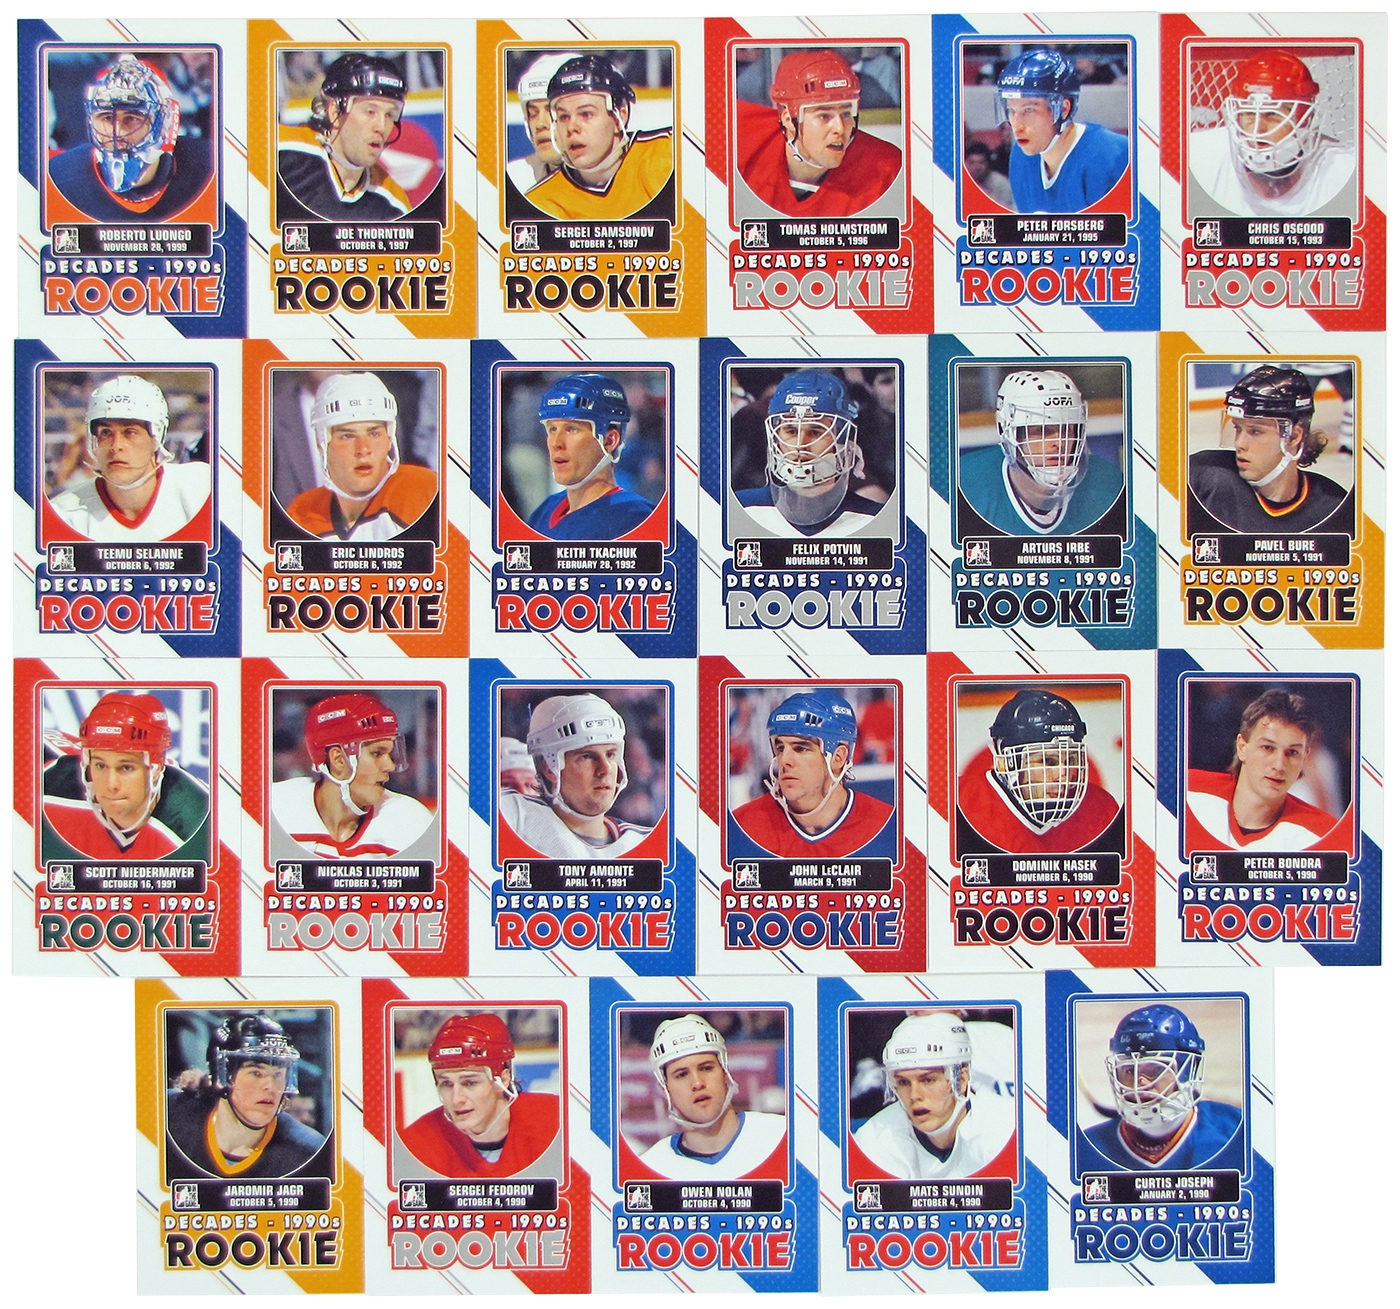 2013-14 ITG Decades 1990s Rookies Hockey Complete 23 Card